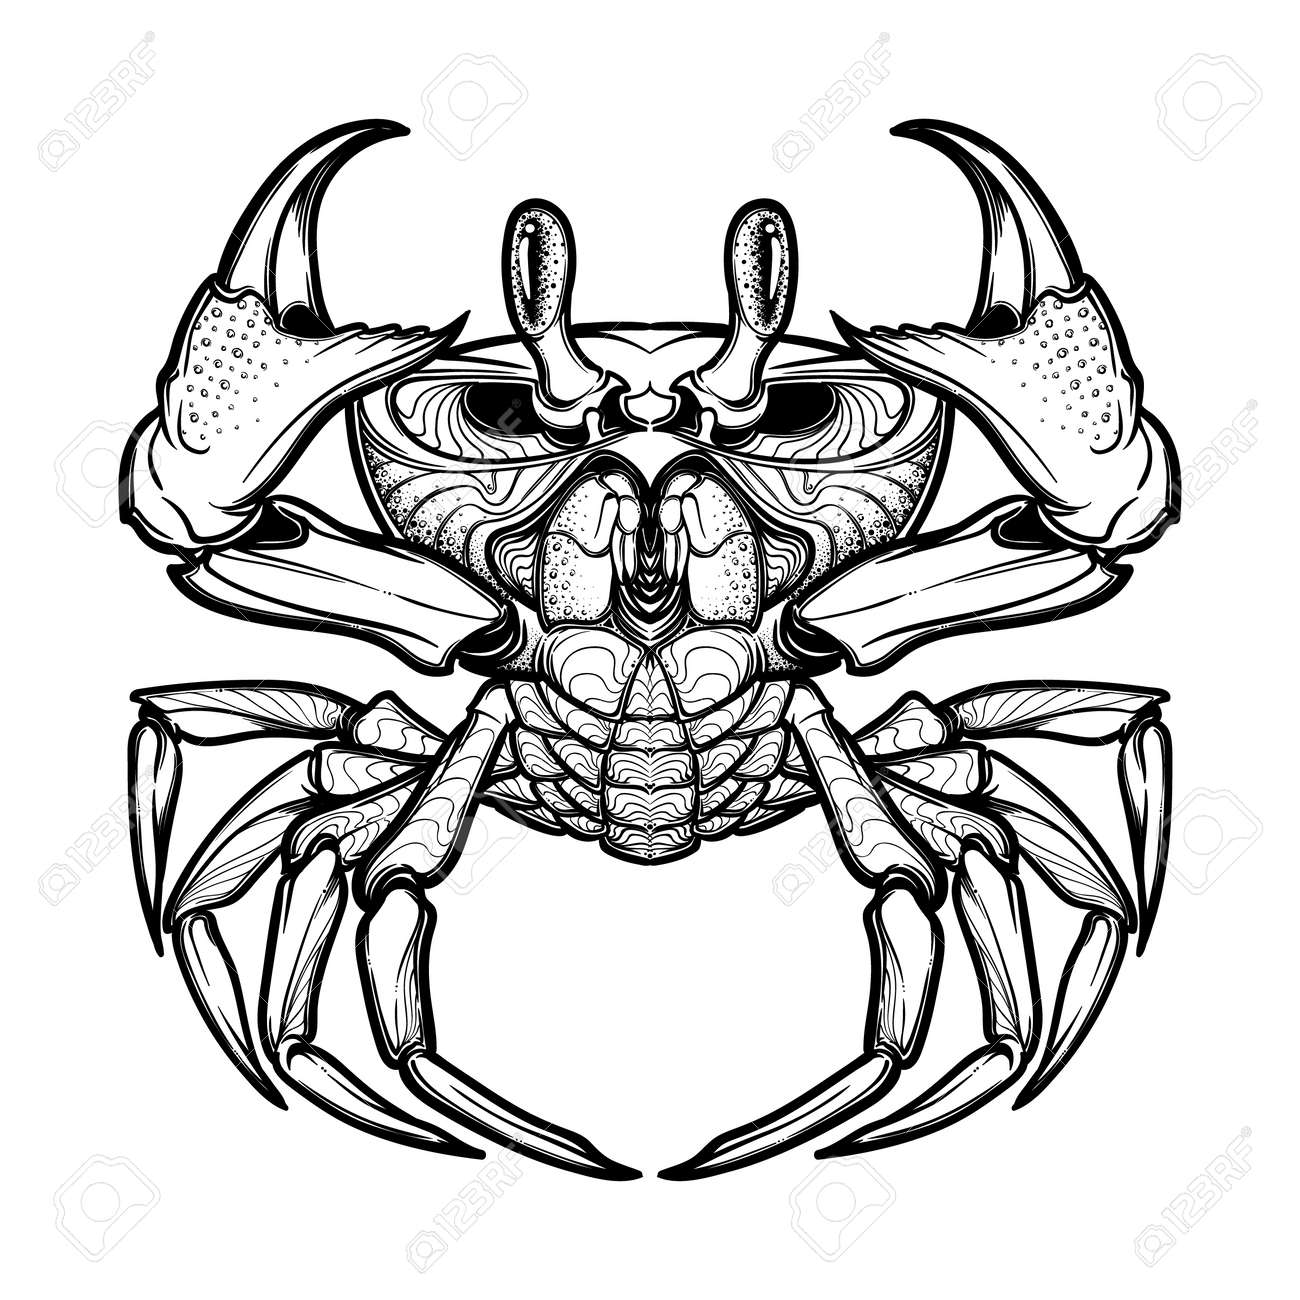 Cancer zodiac tribal tattoo stock photos royalty free cancer cancer accurate symmetrical drawing of the beach crab concept art for tattoo horoscope buycottarizona